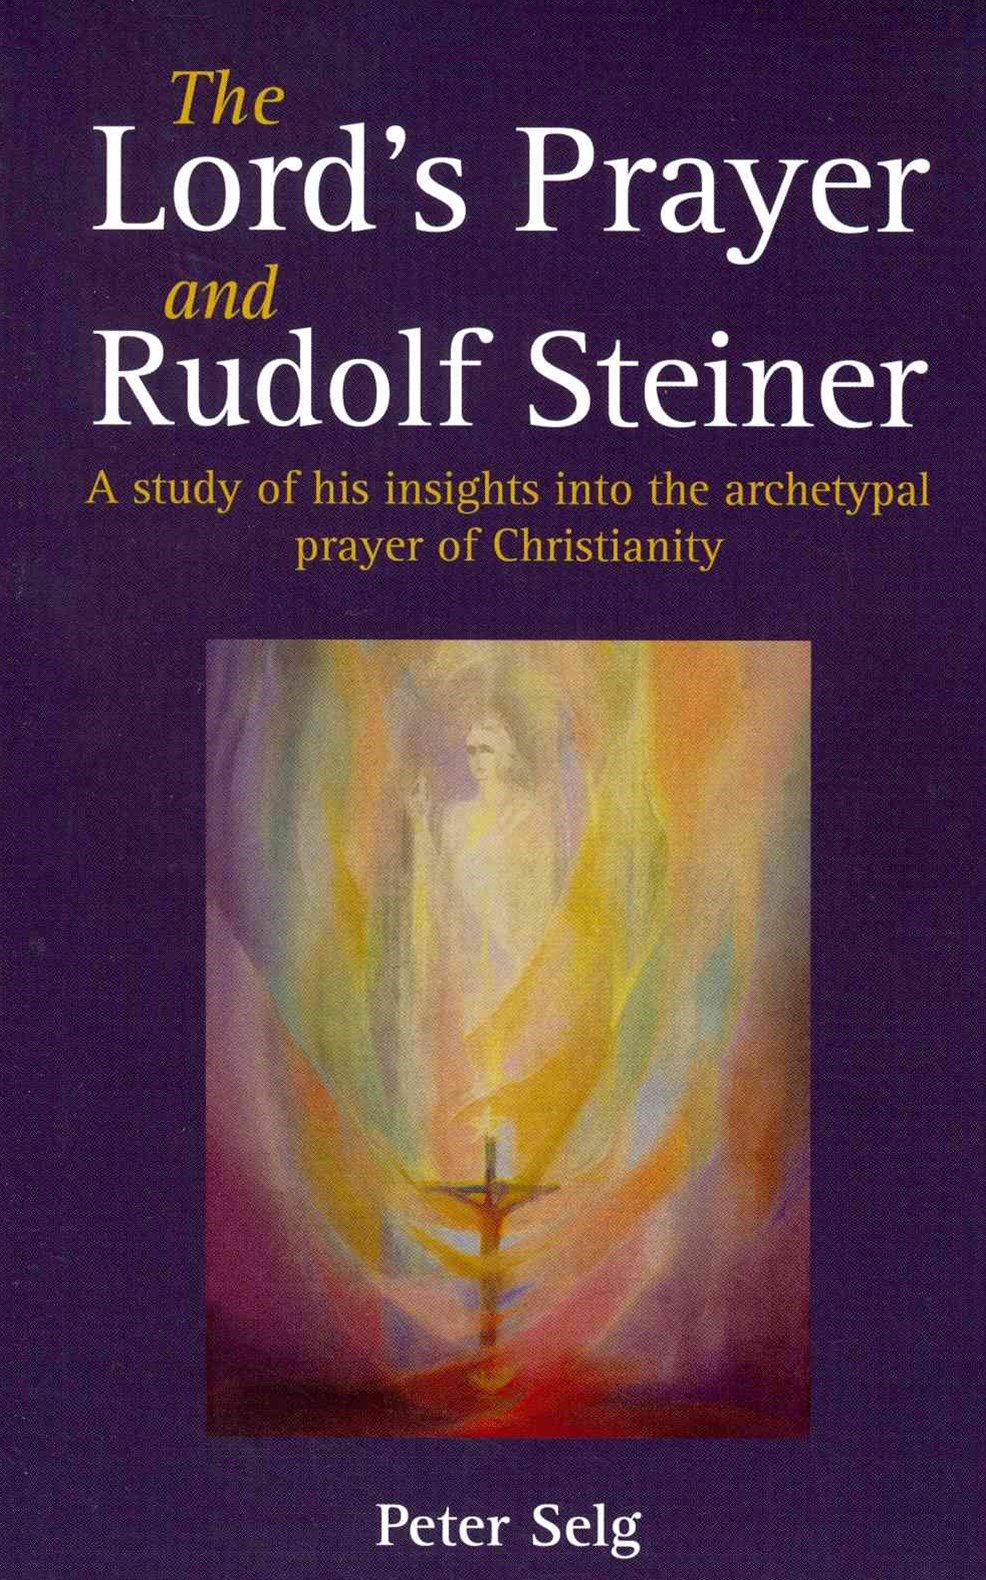 The Lord's Prayer and Rudolf Steiner